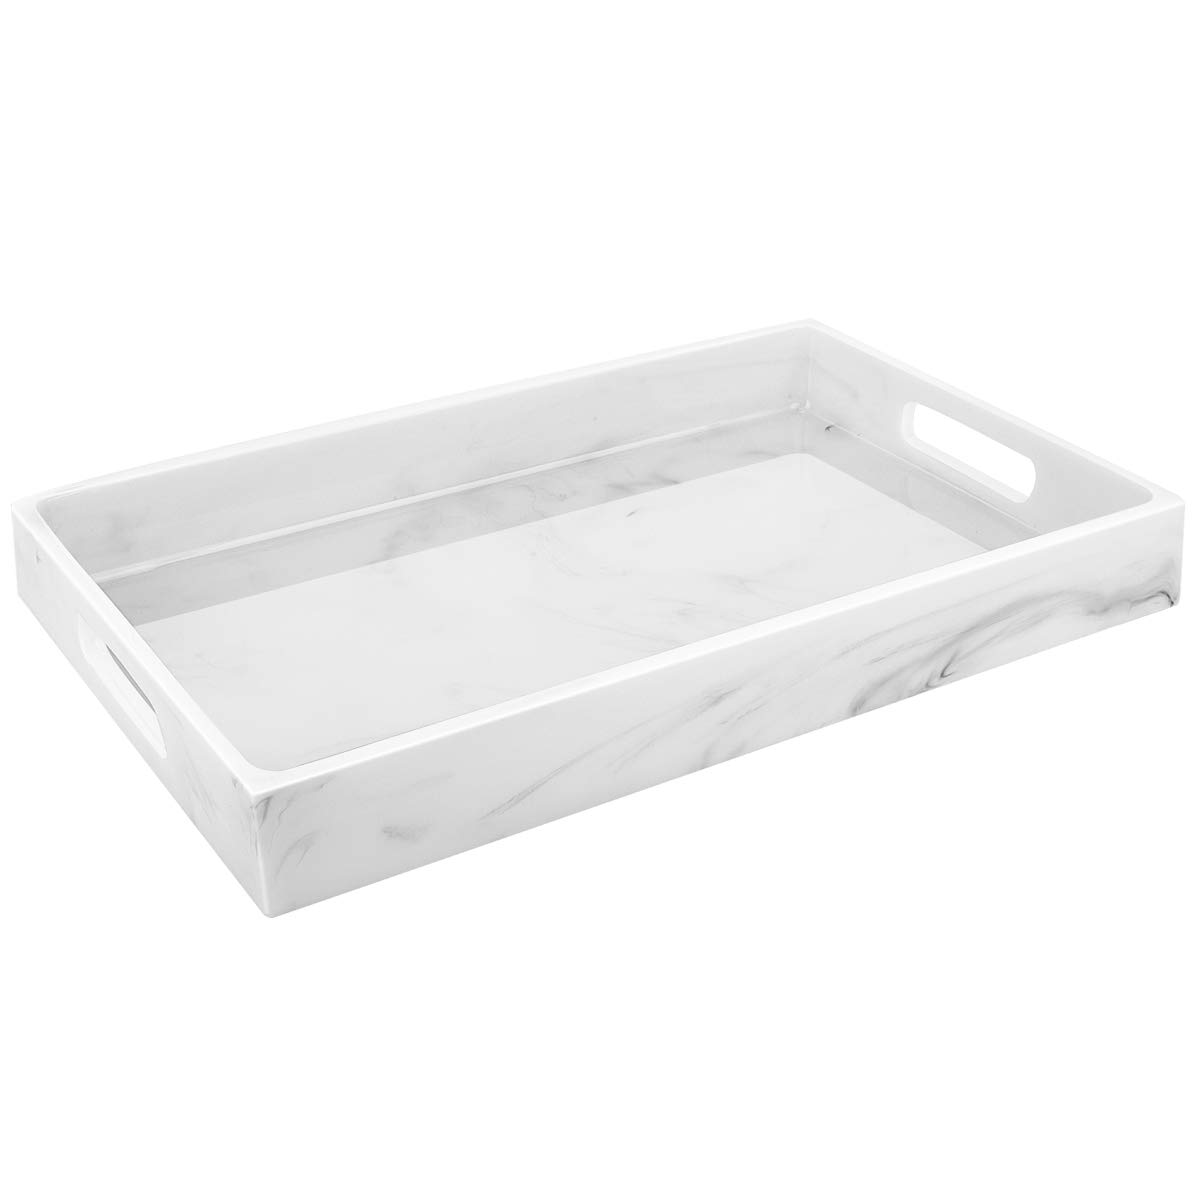 Luxspire Vanity Serving Tray with Handles, Countertop, Kitchen Serve Tray, Toilet Tank Resin Storage Tray, Jewelry Organizer Perfume Tray Decorative Platter - White Marble